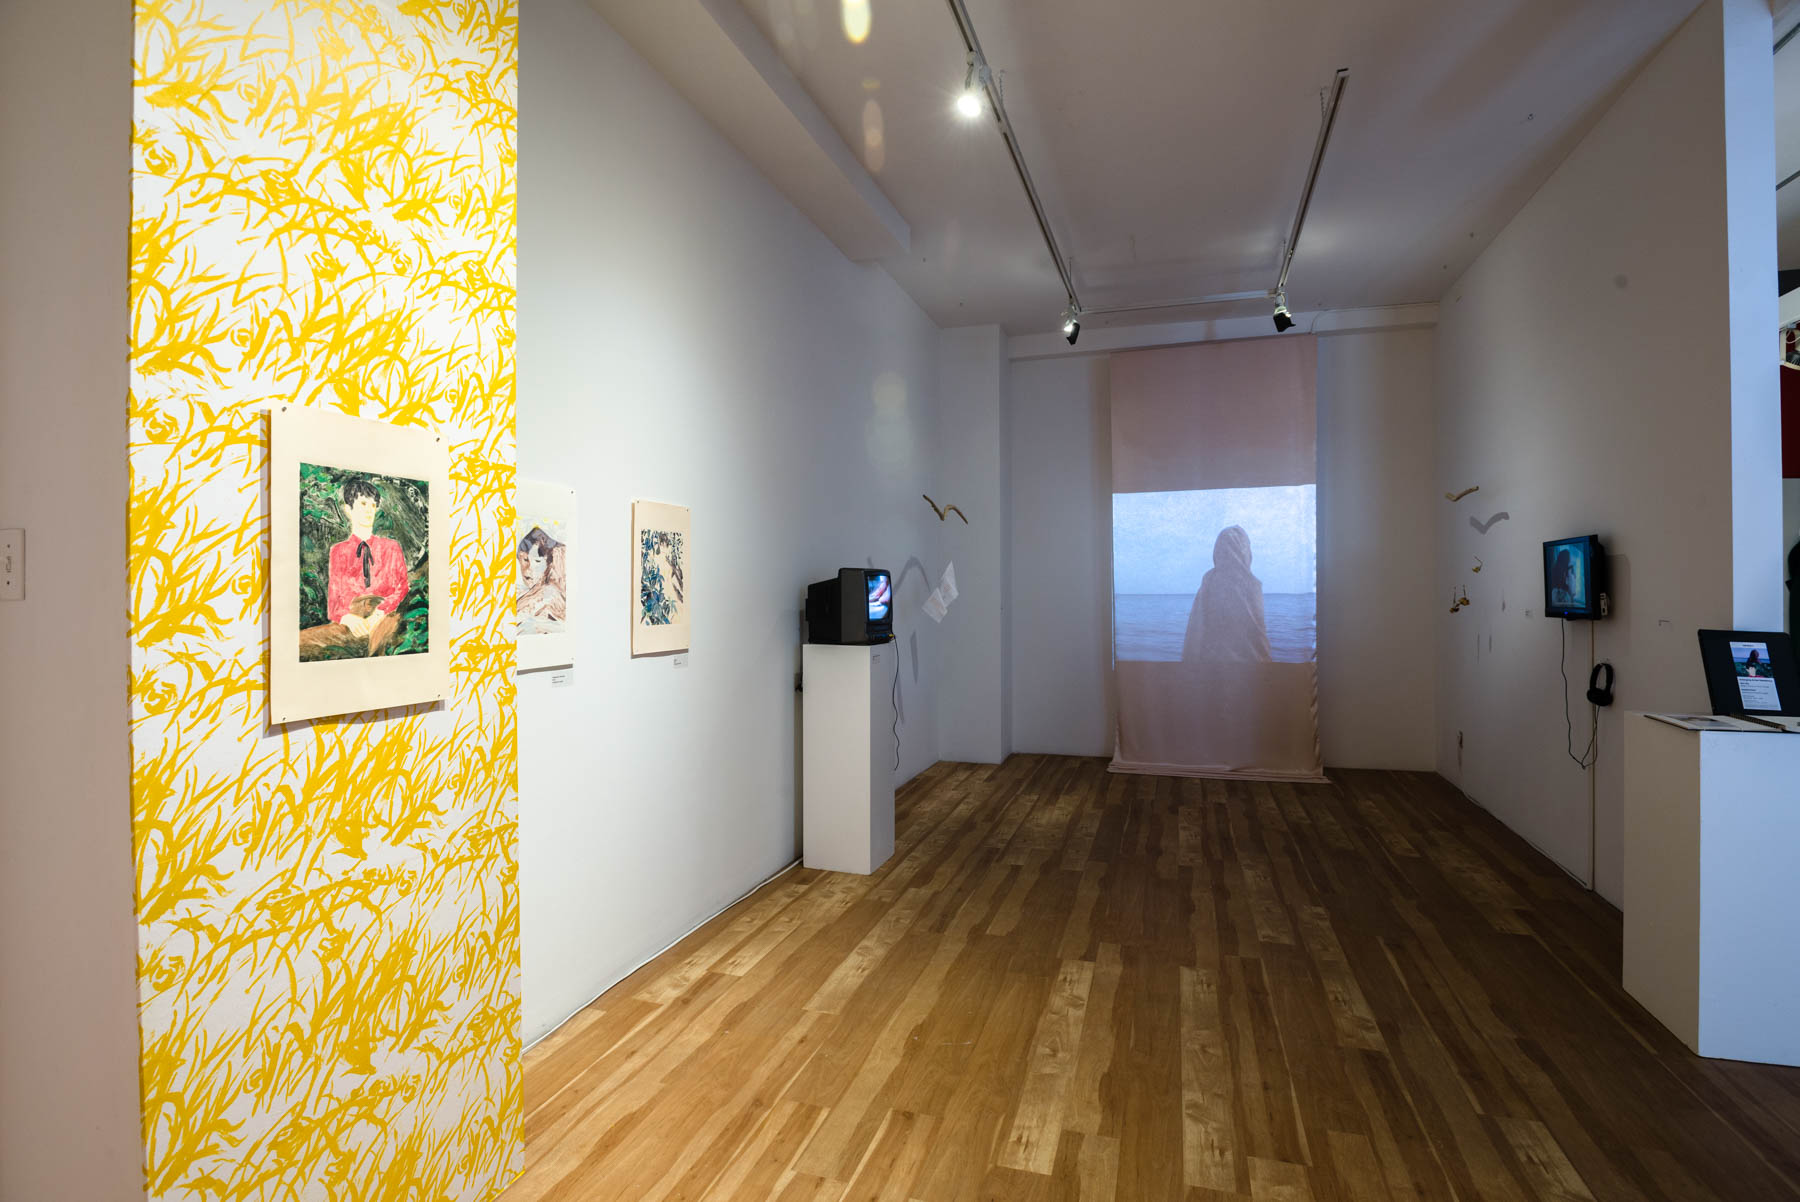 02-Installation shot. When You're In The Throes : learning to breathe again